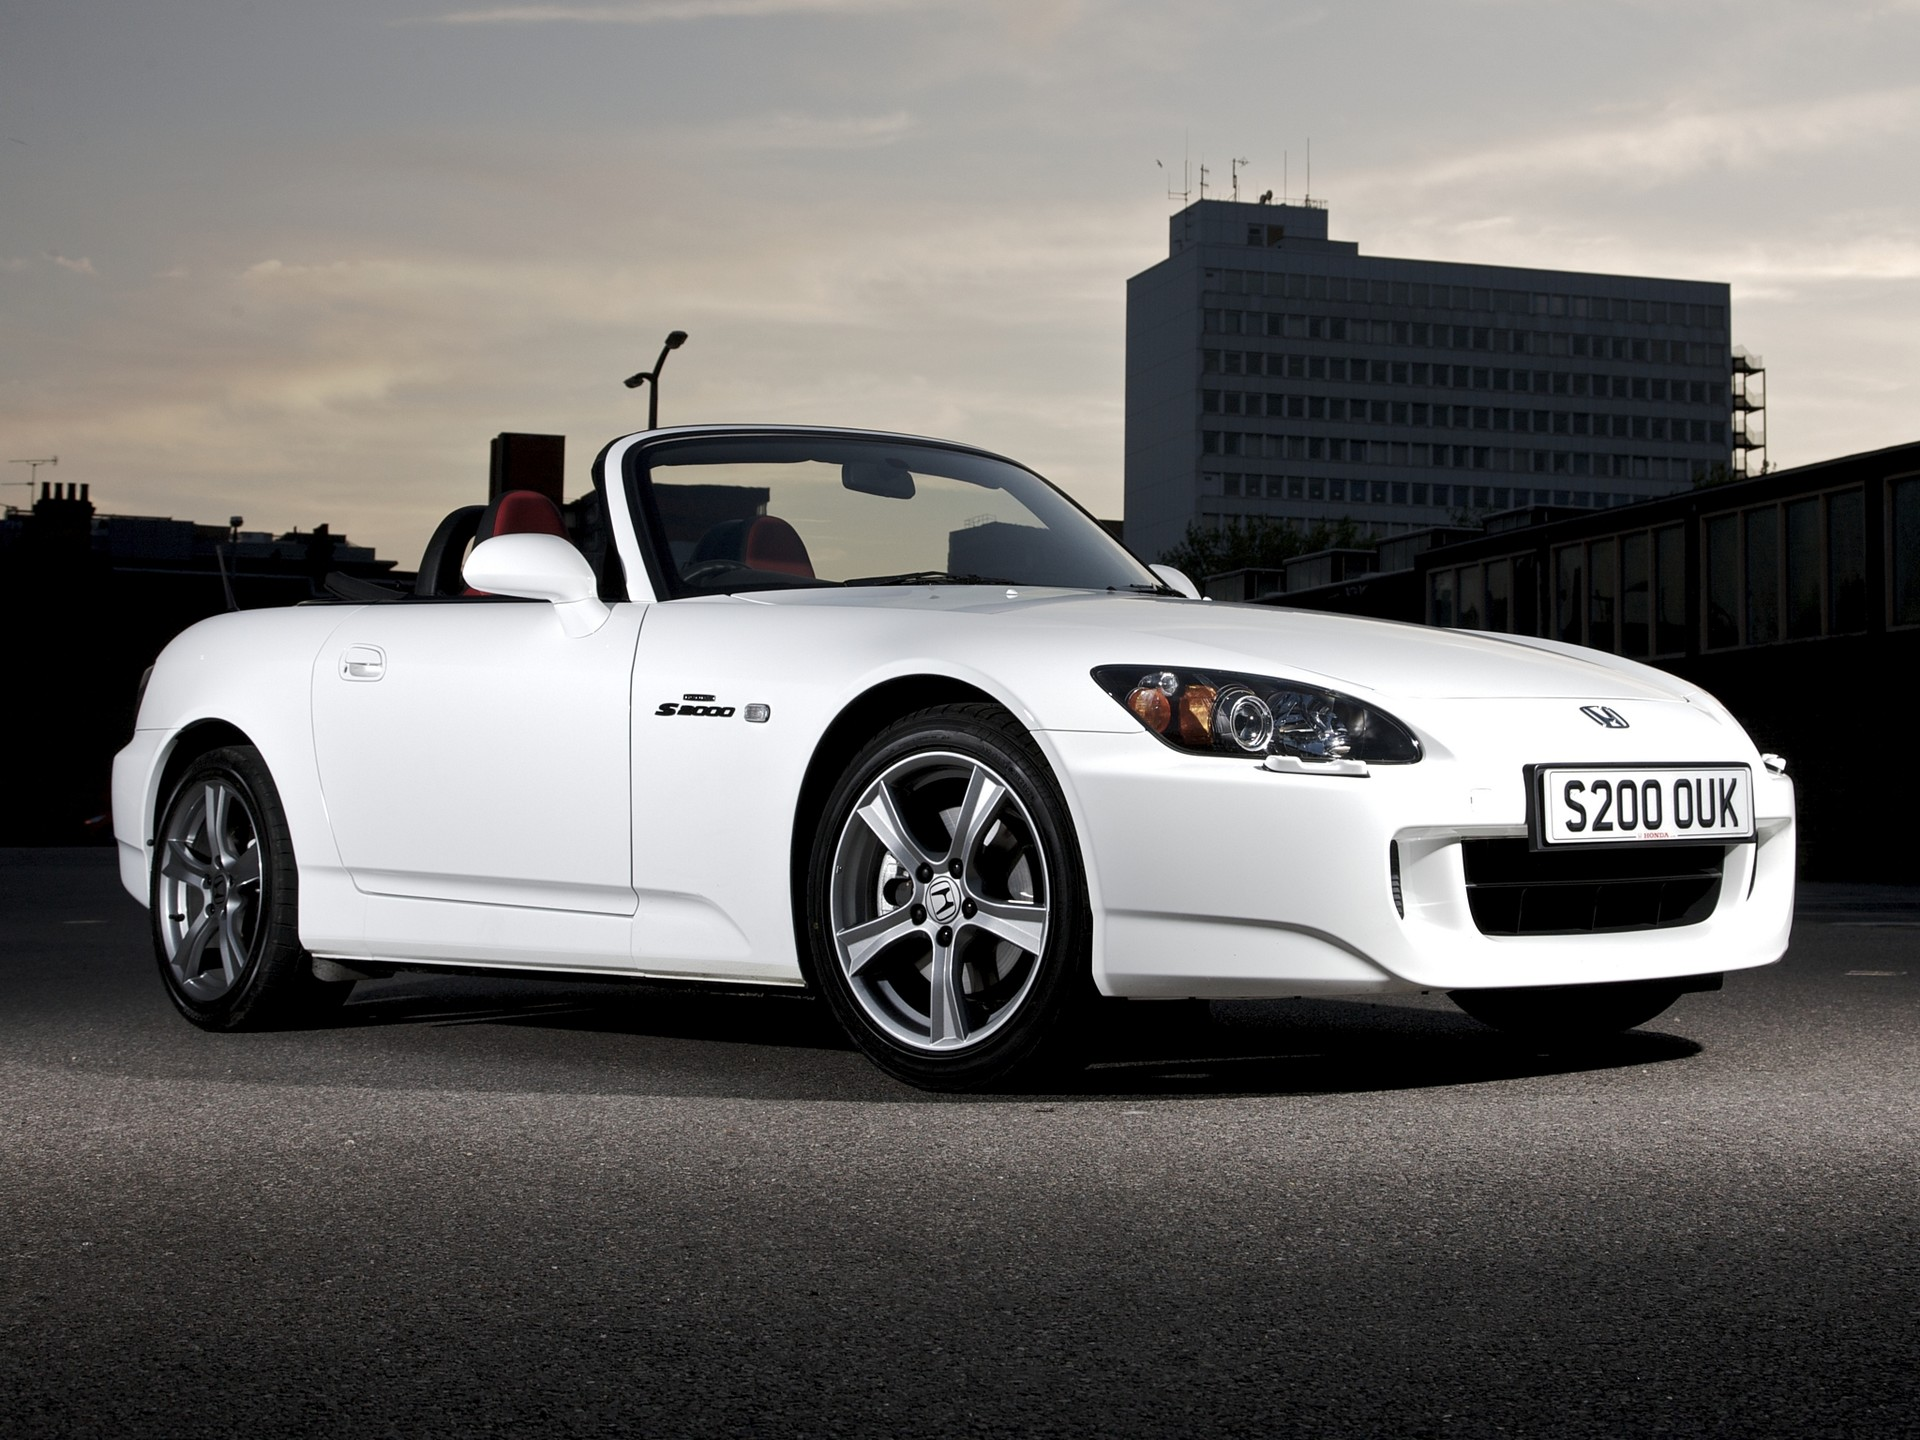 Andre camacho design autowp ru honda s2000 ultimate edition uk spec 18